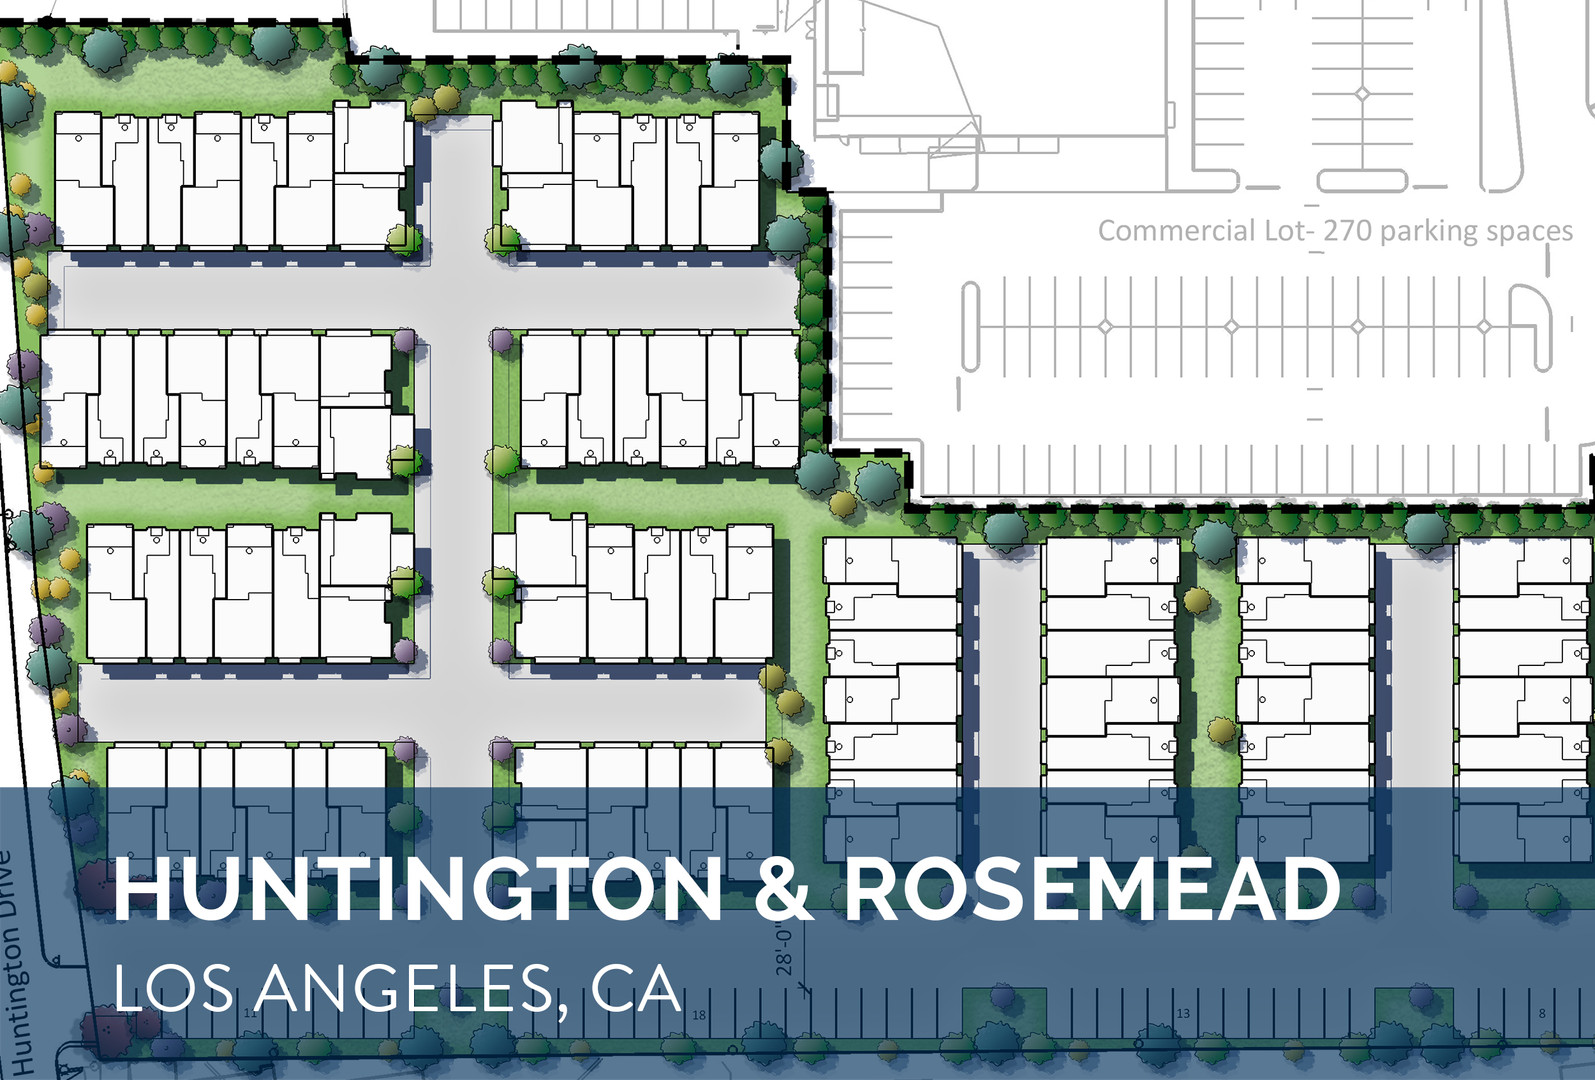 Planning_Slider Huntington Rosemead.jpg